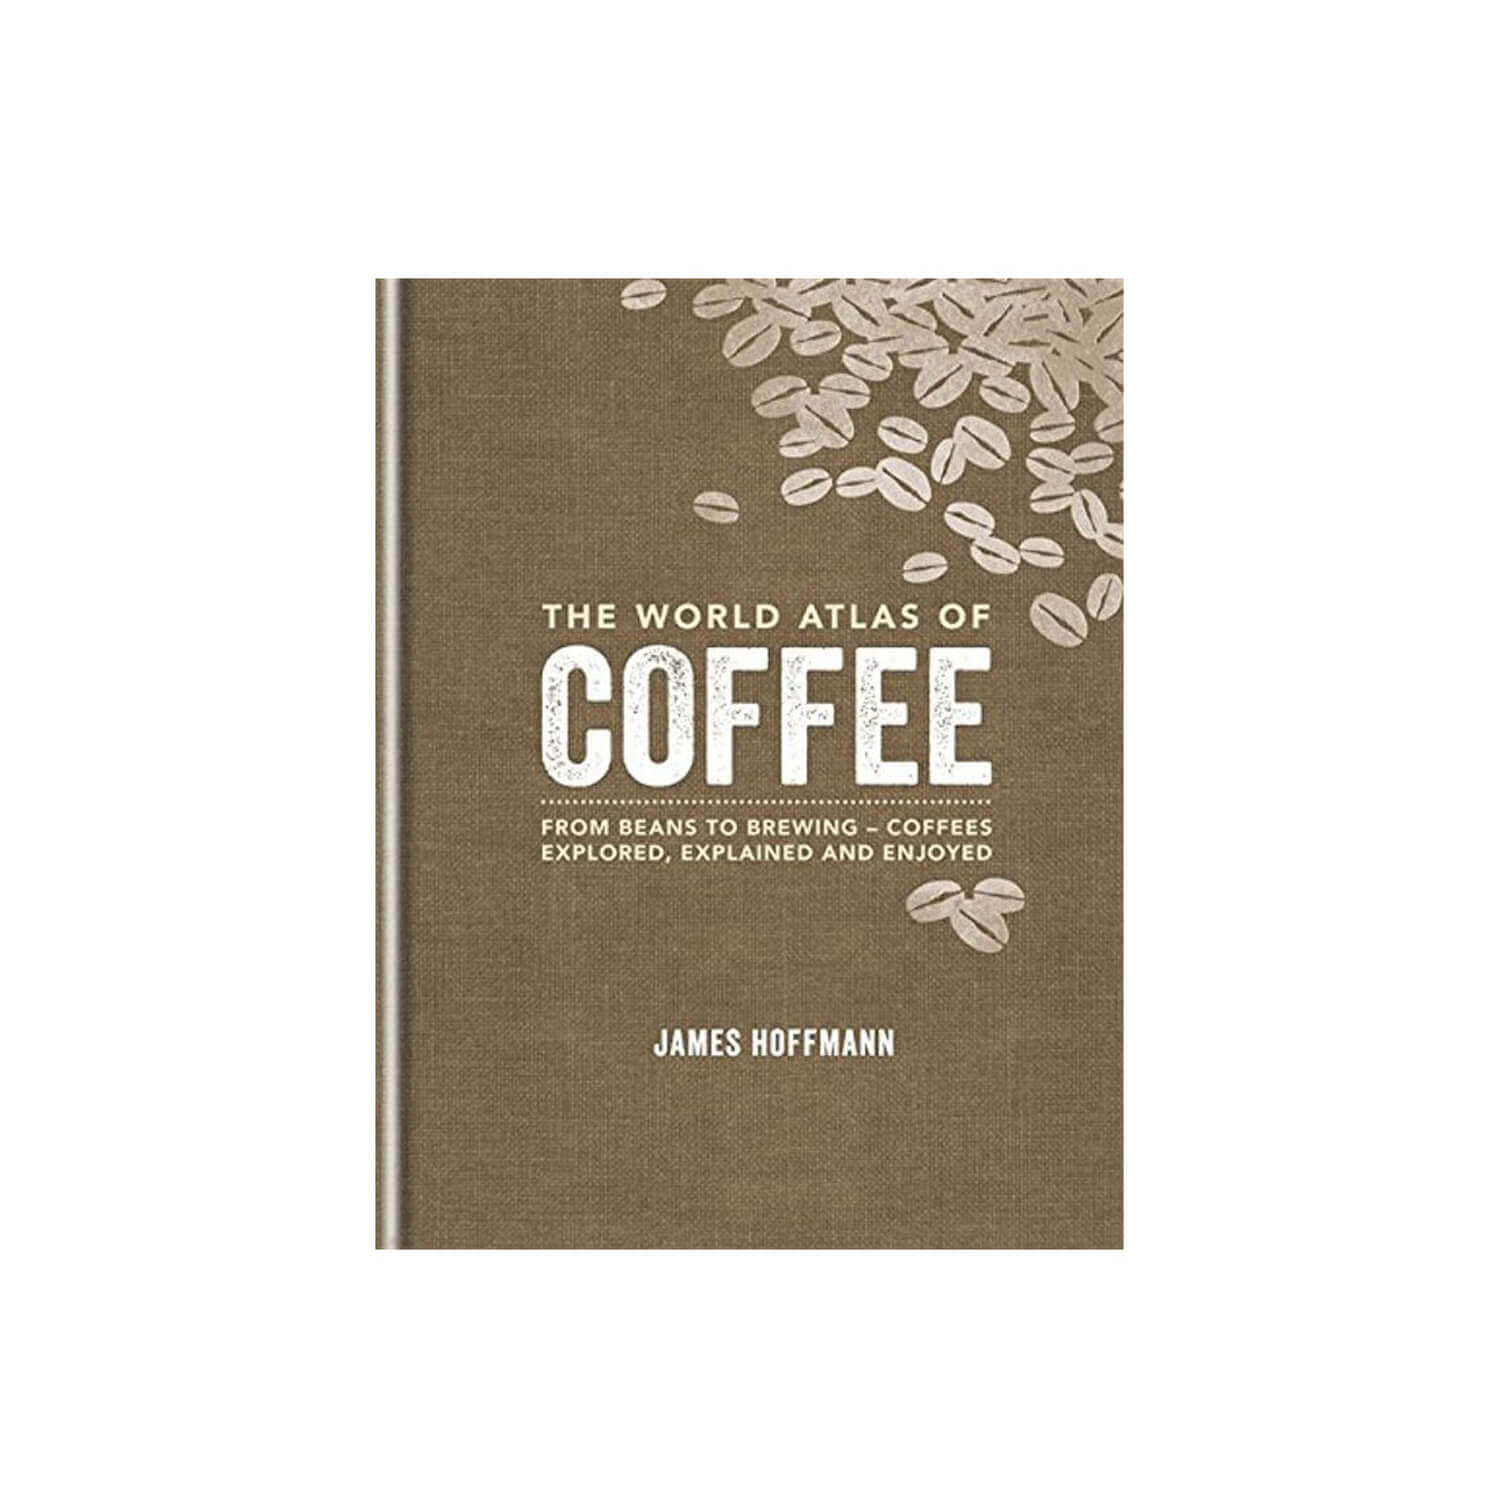 Boek - The world atlas of coffee